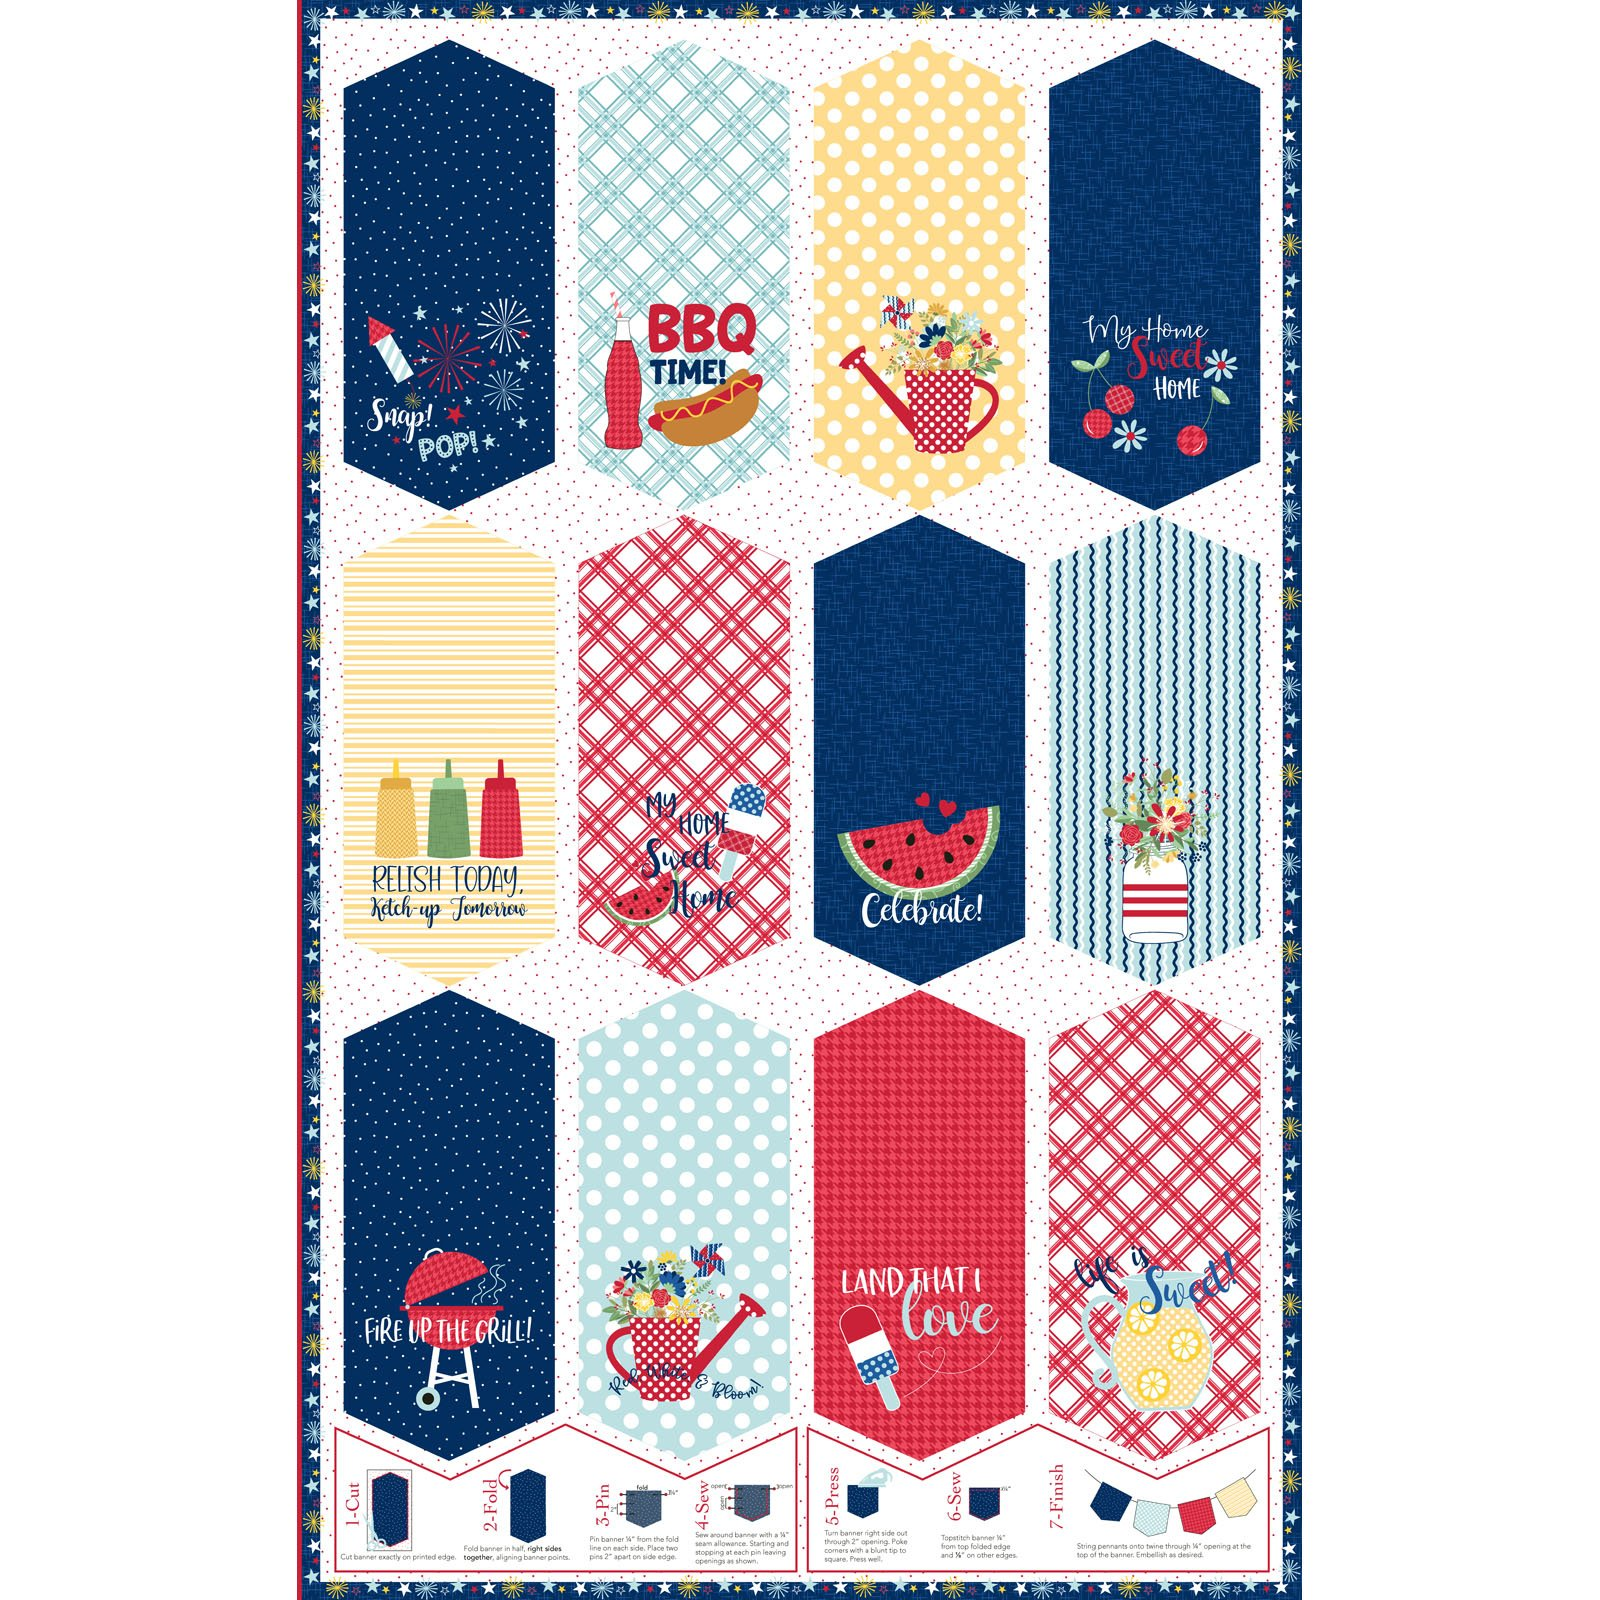 EESC-9900 Z - RED, WHITE & BLOOM BY KIMBERBELL RED,WHI&BLU PENNANT PANEL MULTI - ARRIVING MARCH 2021